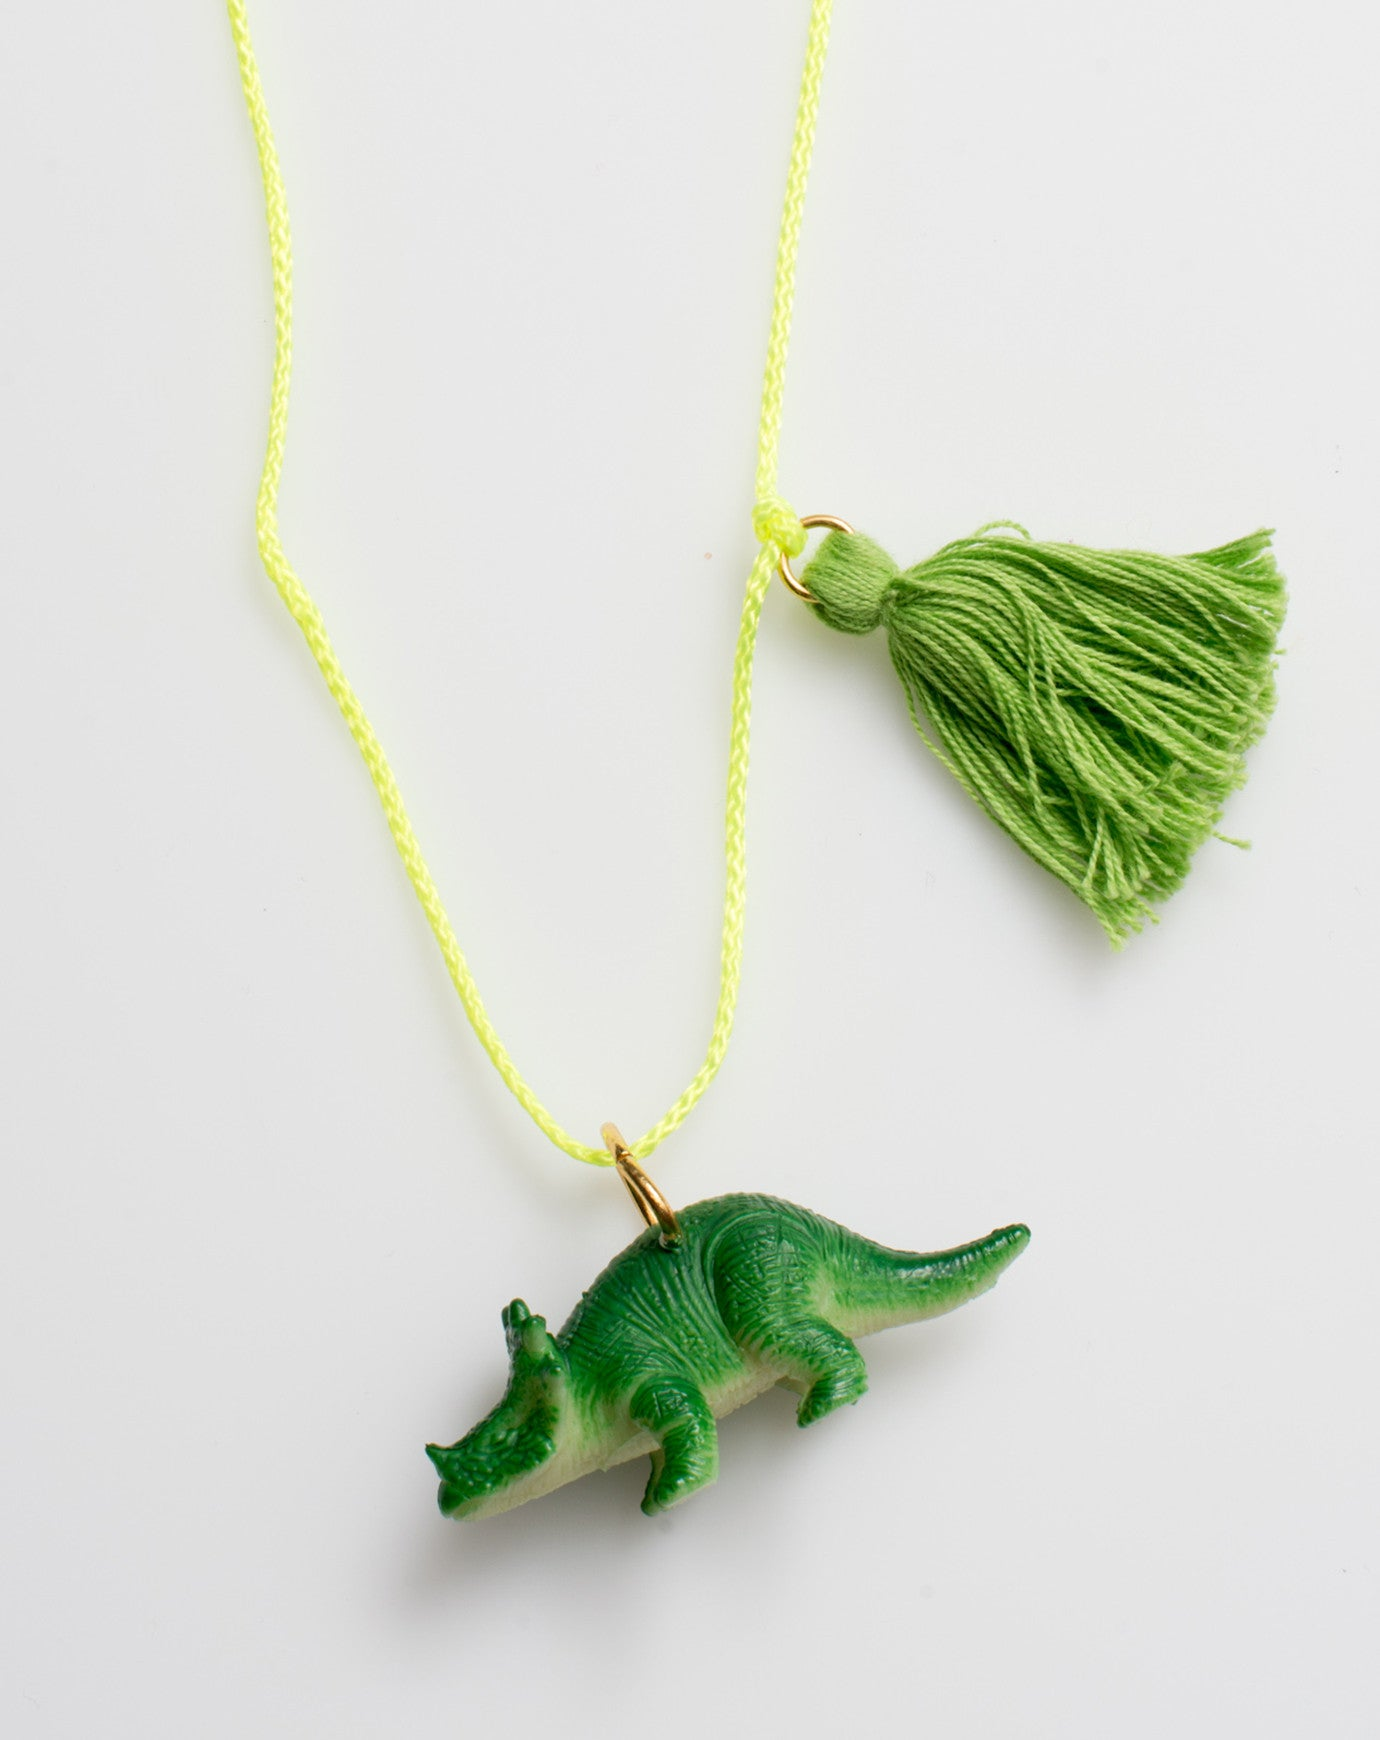 the necklace picture plate so dinosaur pin he pendant be looks cute might this s like gold